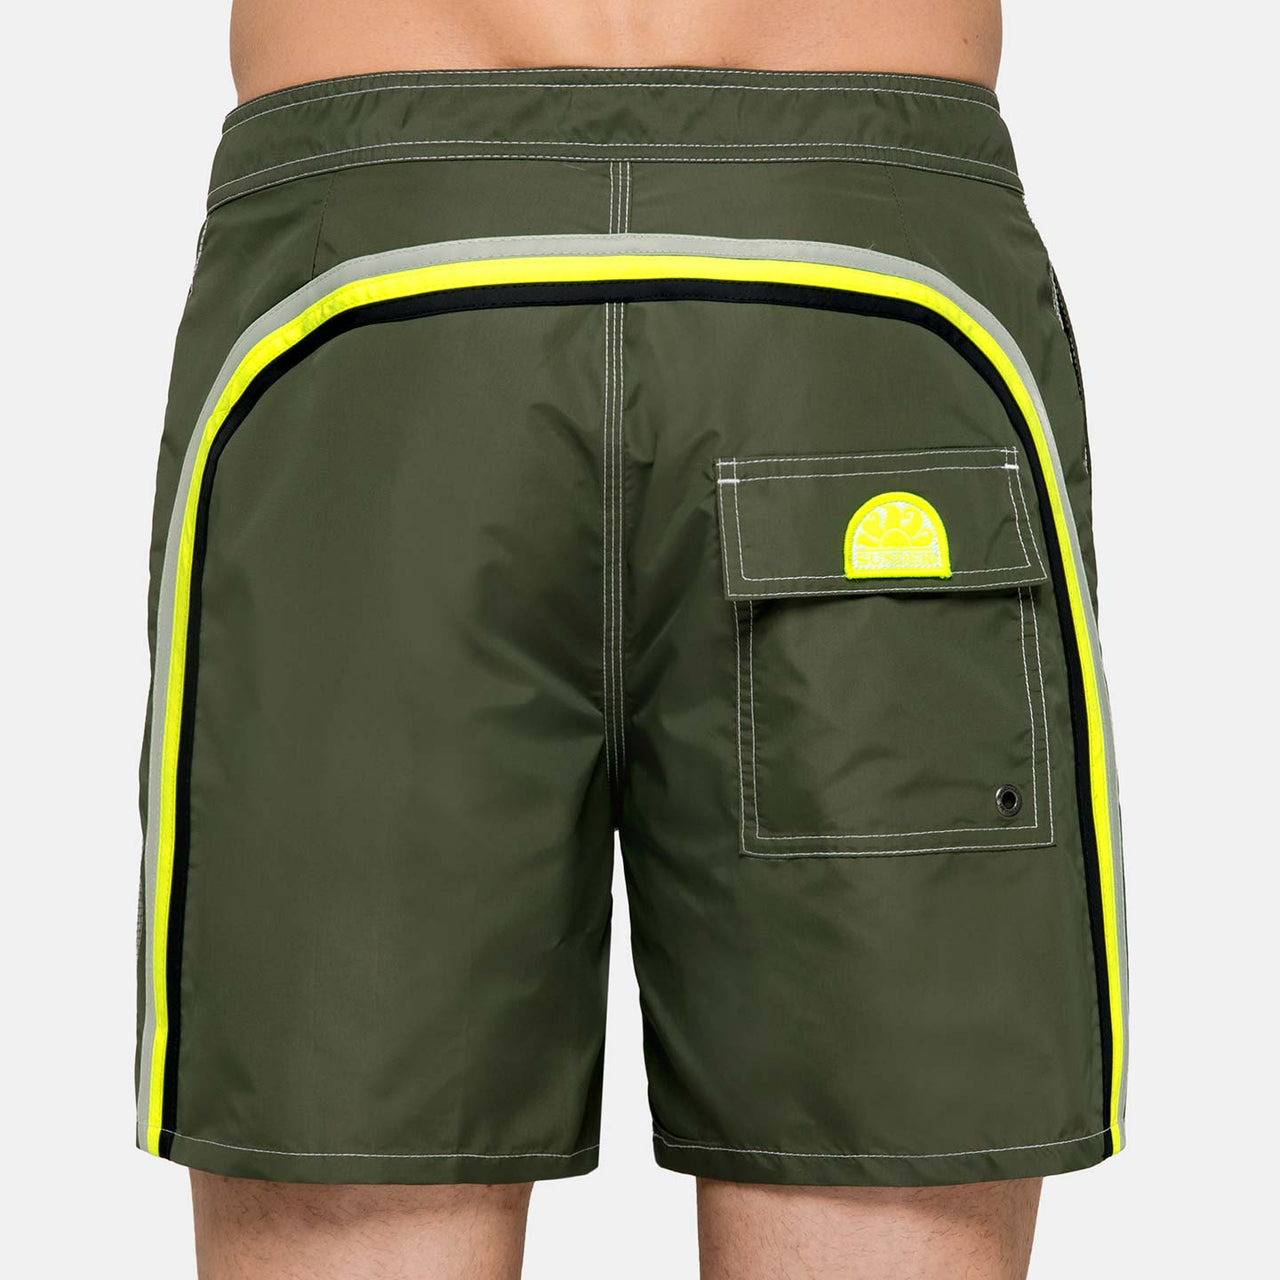 Sundek Men's Rainbow Mid-Length Swim Trunks - Dark Army Green